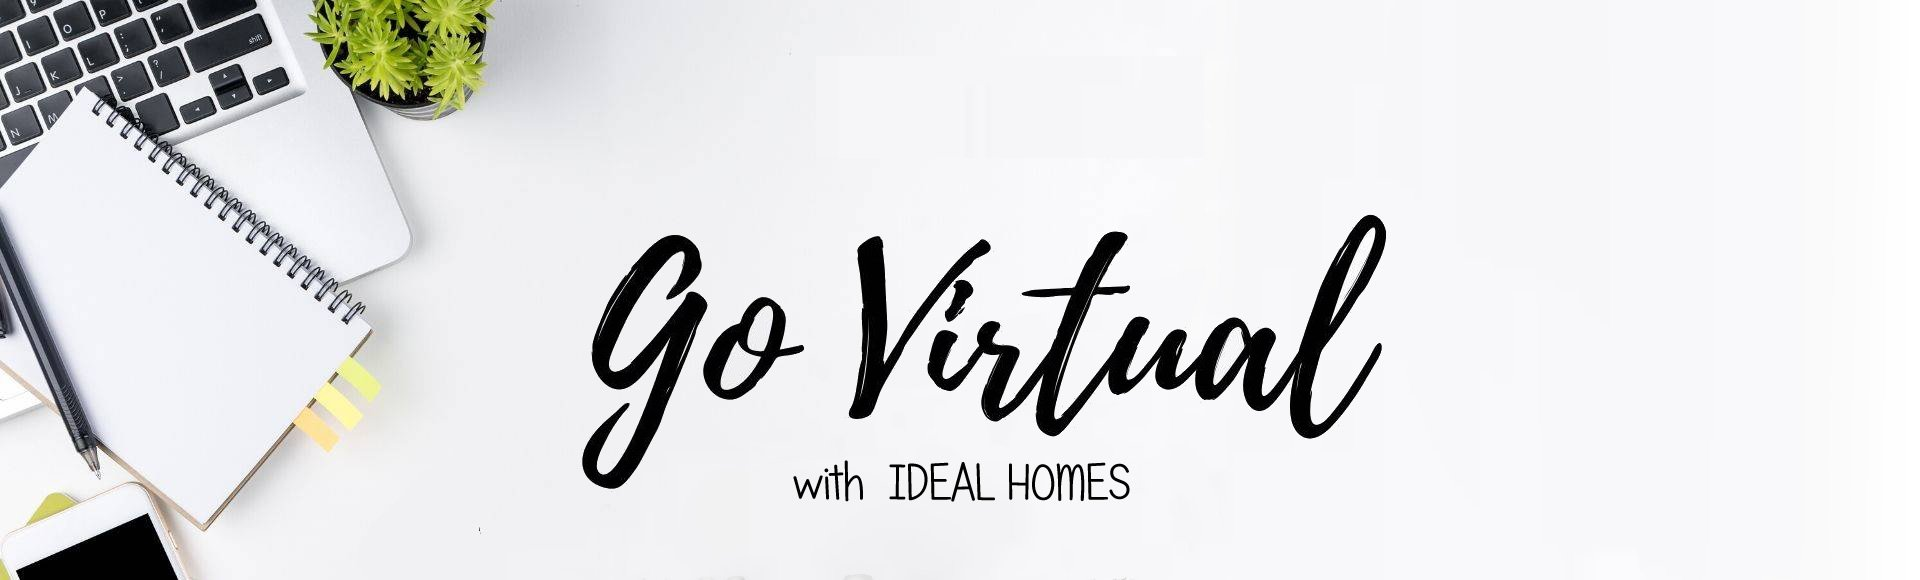 Go virtual tour buying property in Portugal